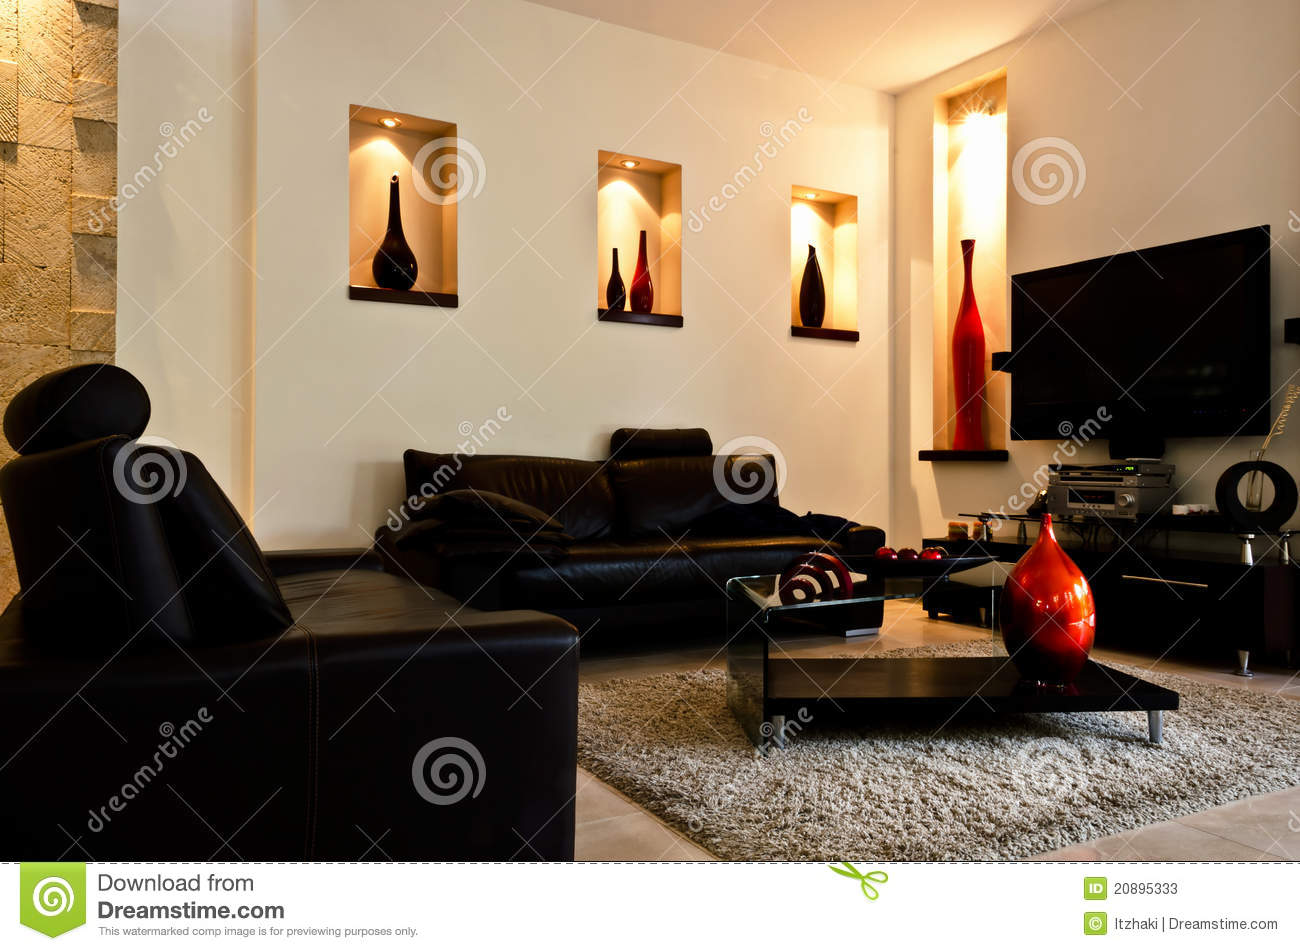 salle de s jour moderne image stock image du tage lifestyles 20895333. Black Bedroom Furniture Sets. Home Design Ideas